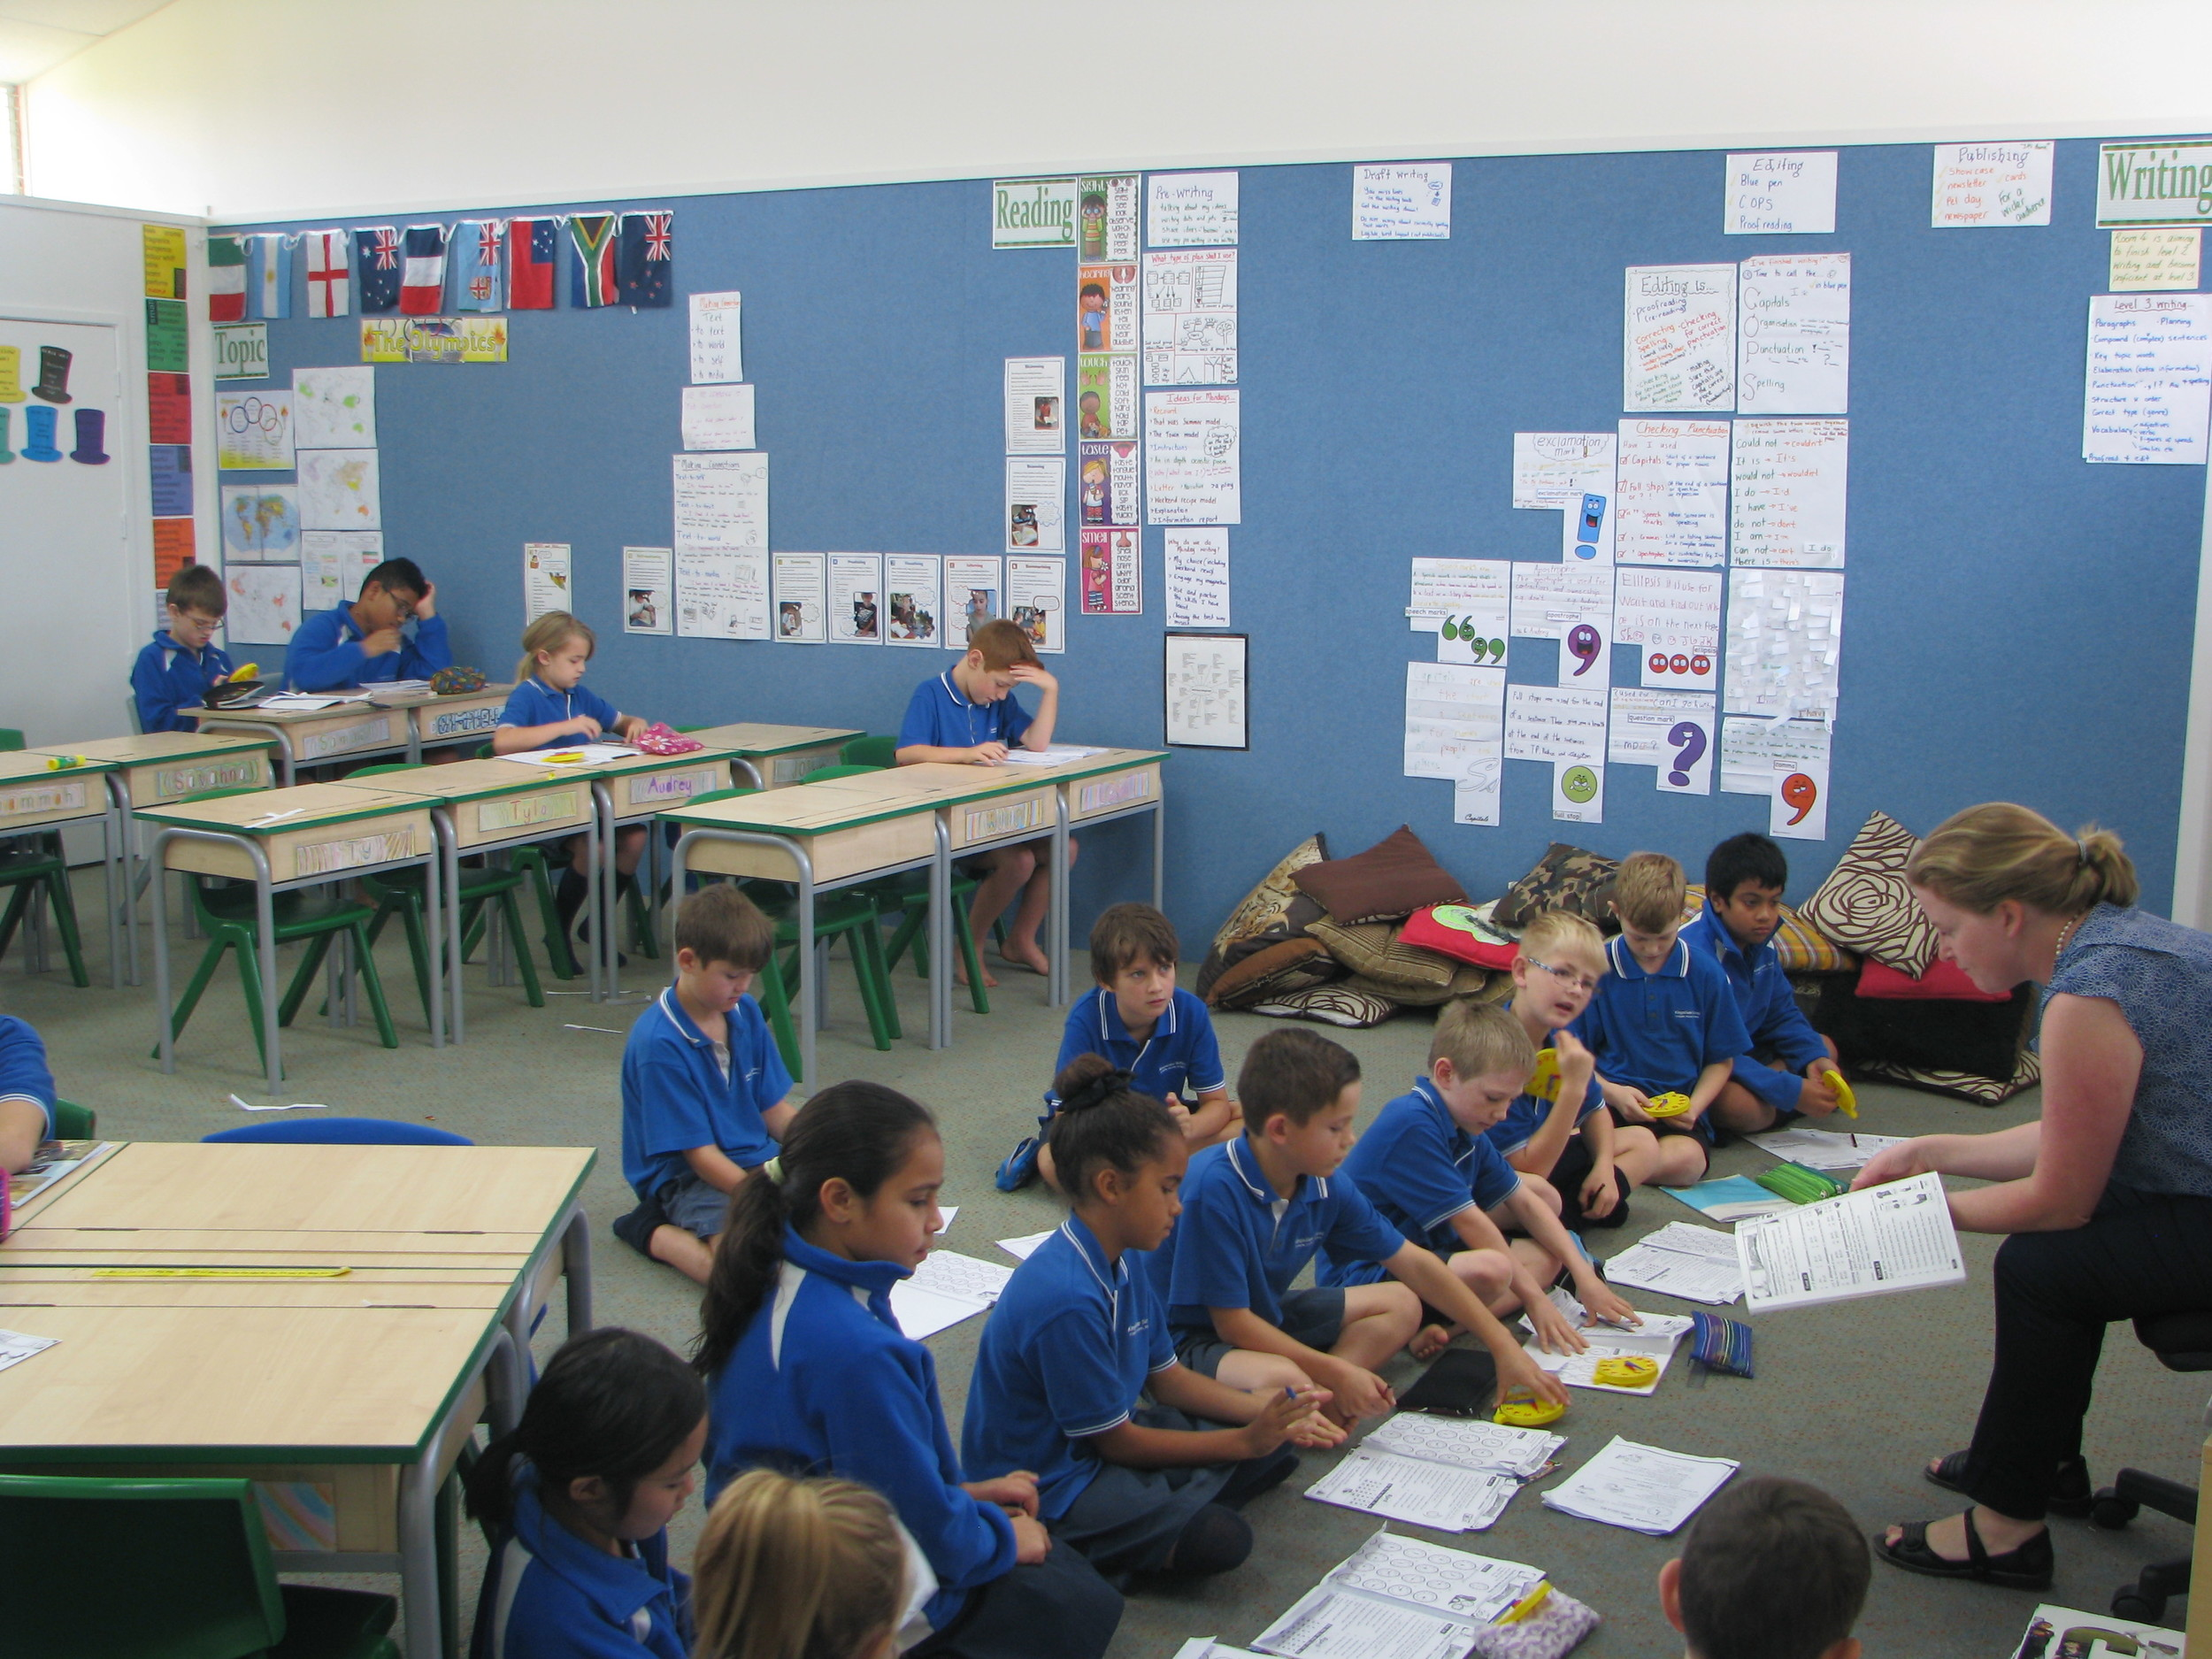 Our hall transformed into two classes.